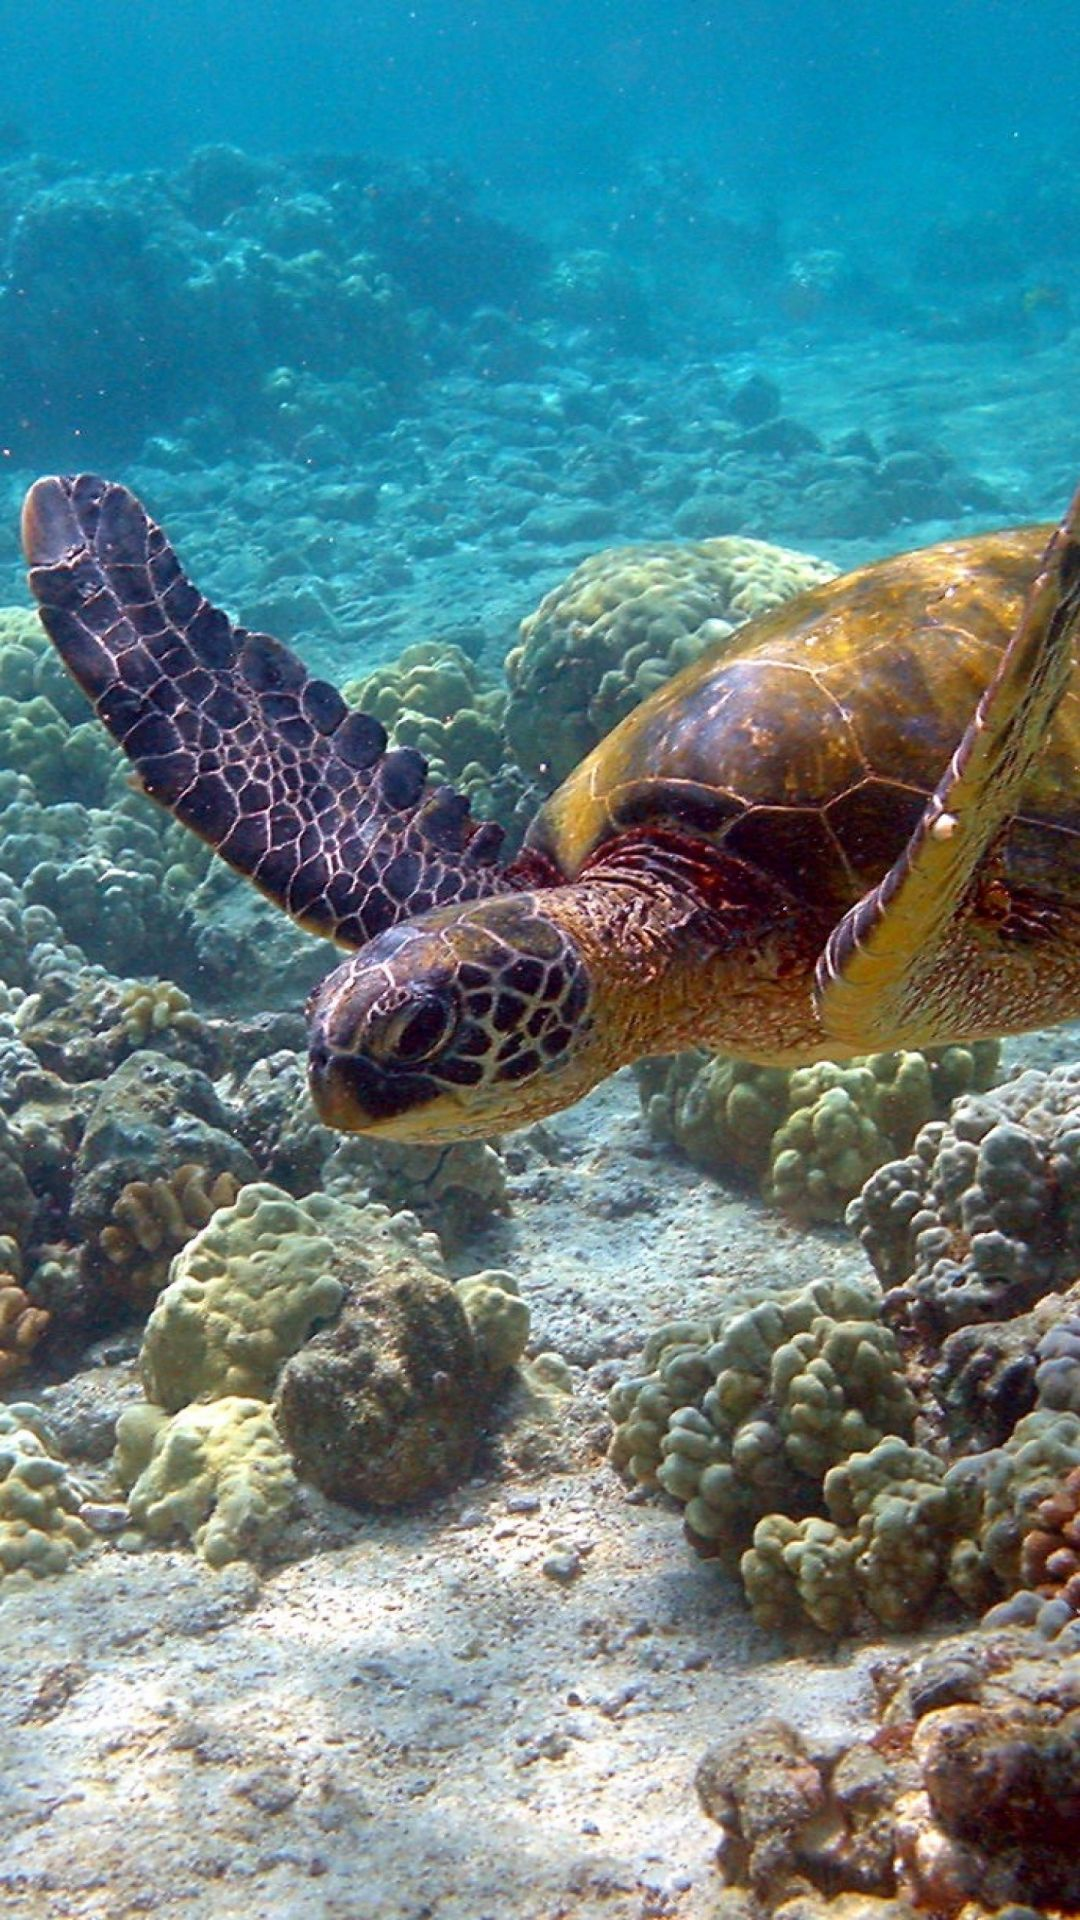 50 Sea Turtle Wallpaper Backgrounds Android Iphone Desktop Hd Backgrounds Wallpapers 1080p 4k 1440x2560 2021